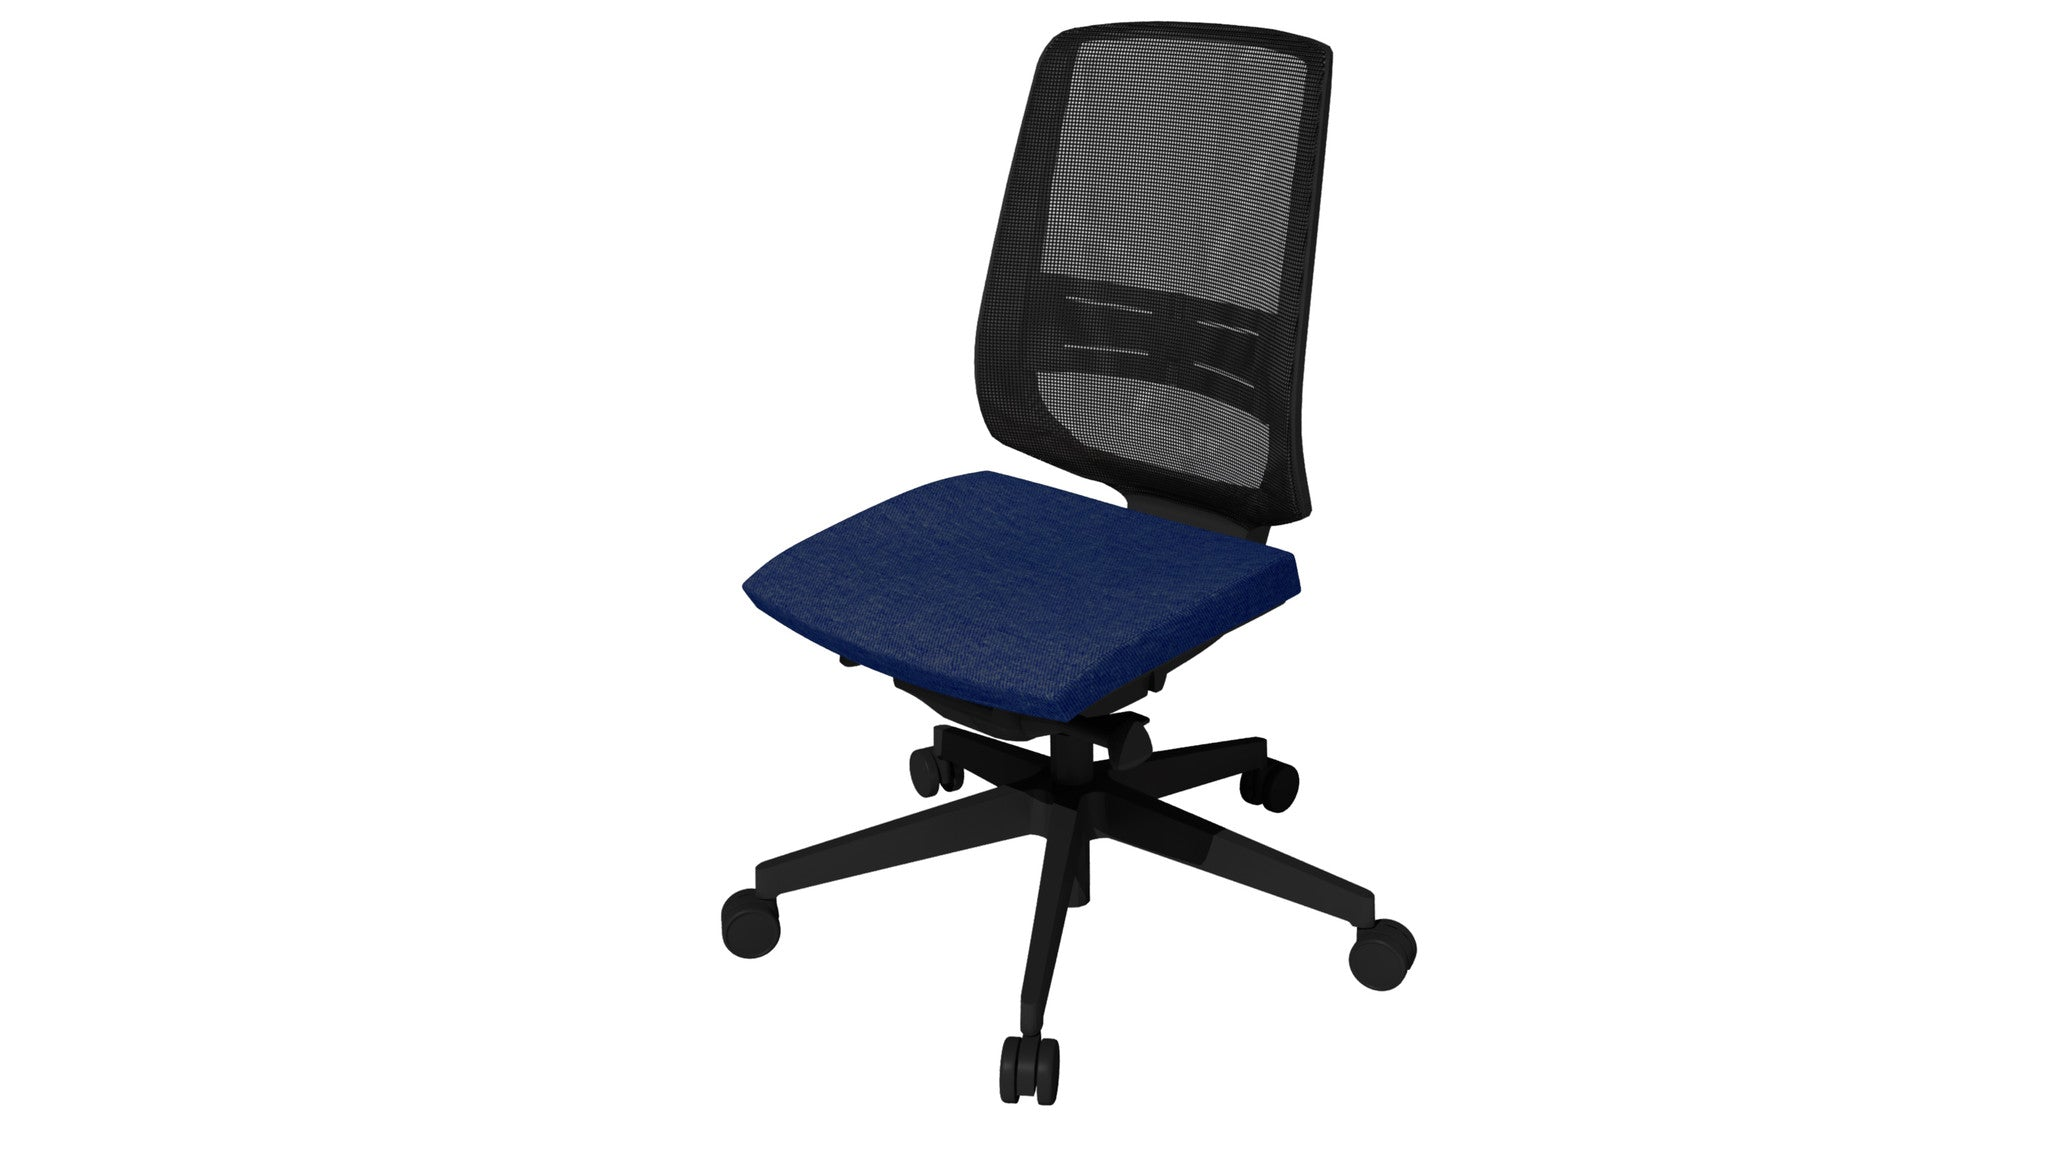 Rumas kontorstol office chair Fly pumpe - blue fabric (nx-15)